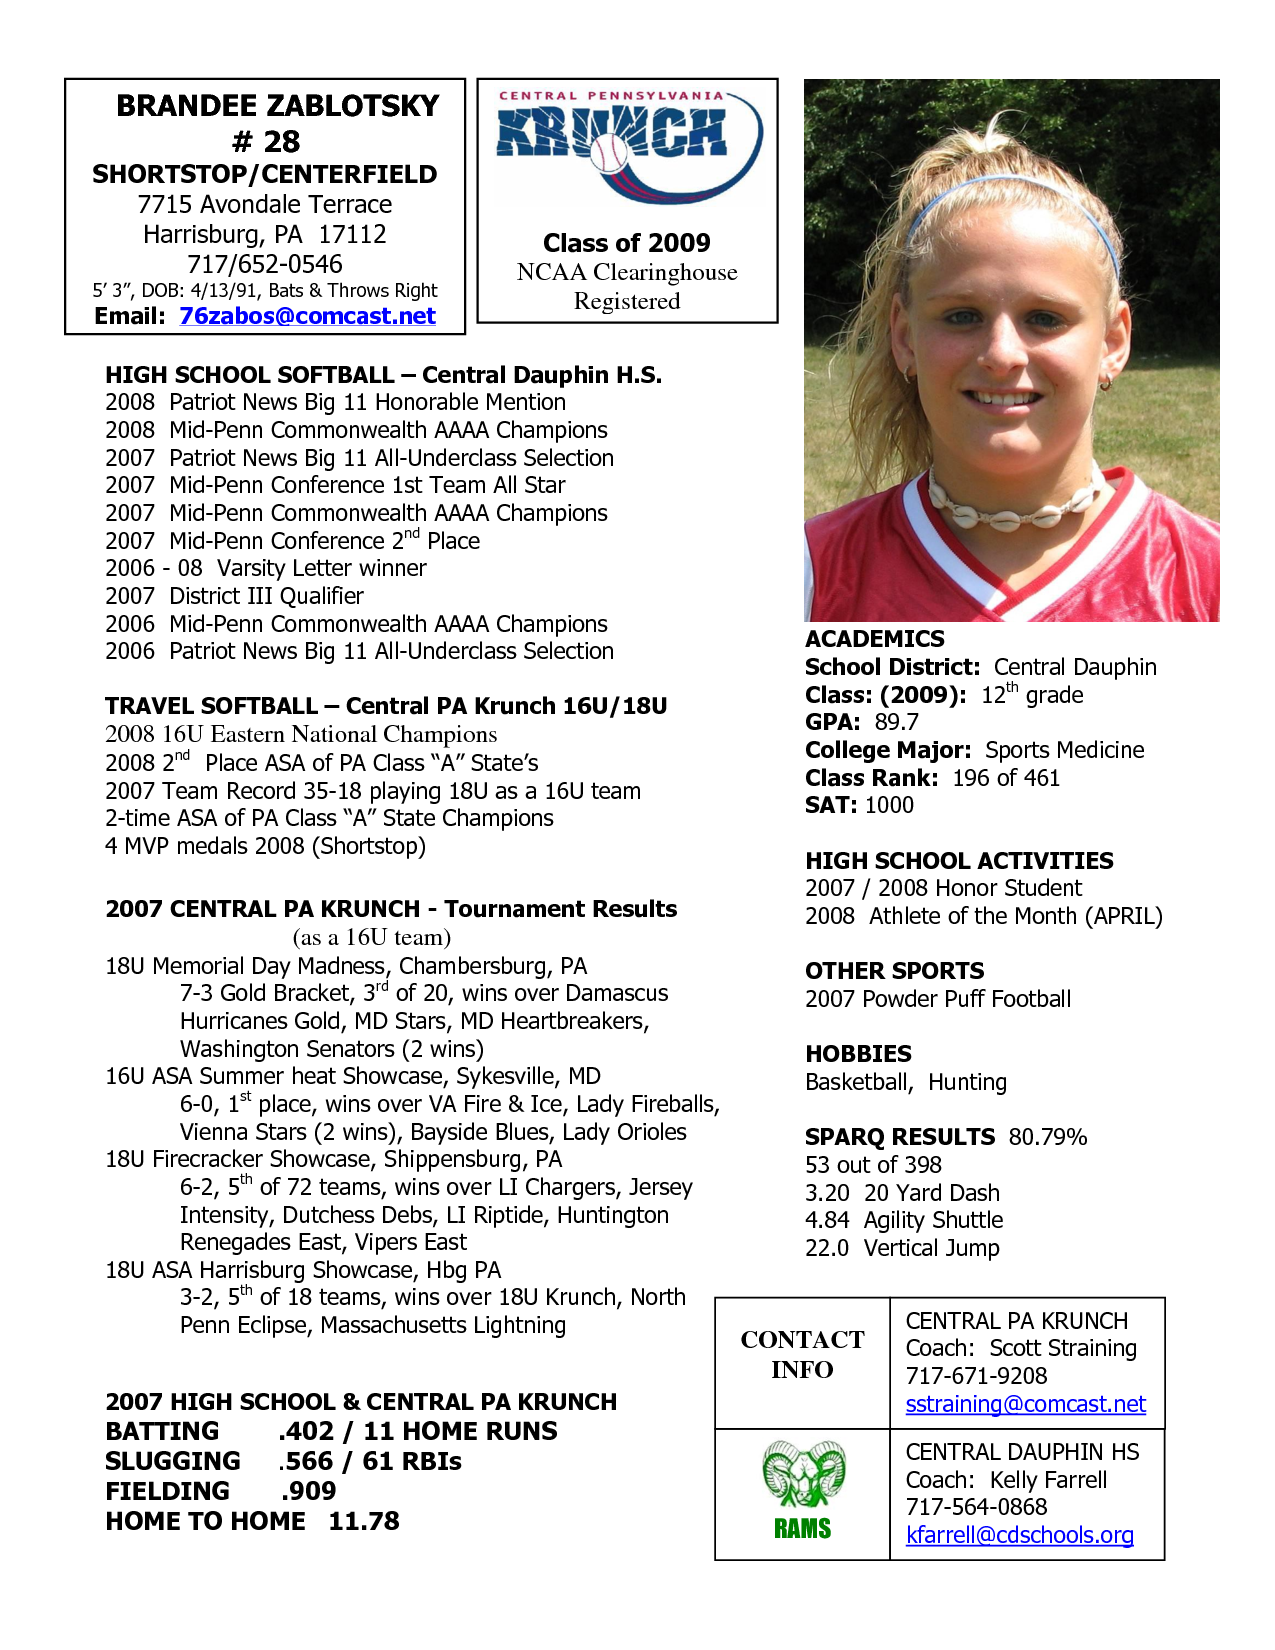 Team Player In Resume Softball Profile Sample Player Profile Central